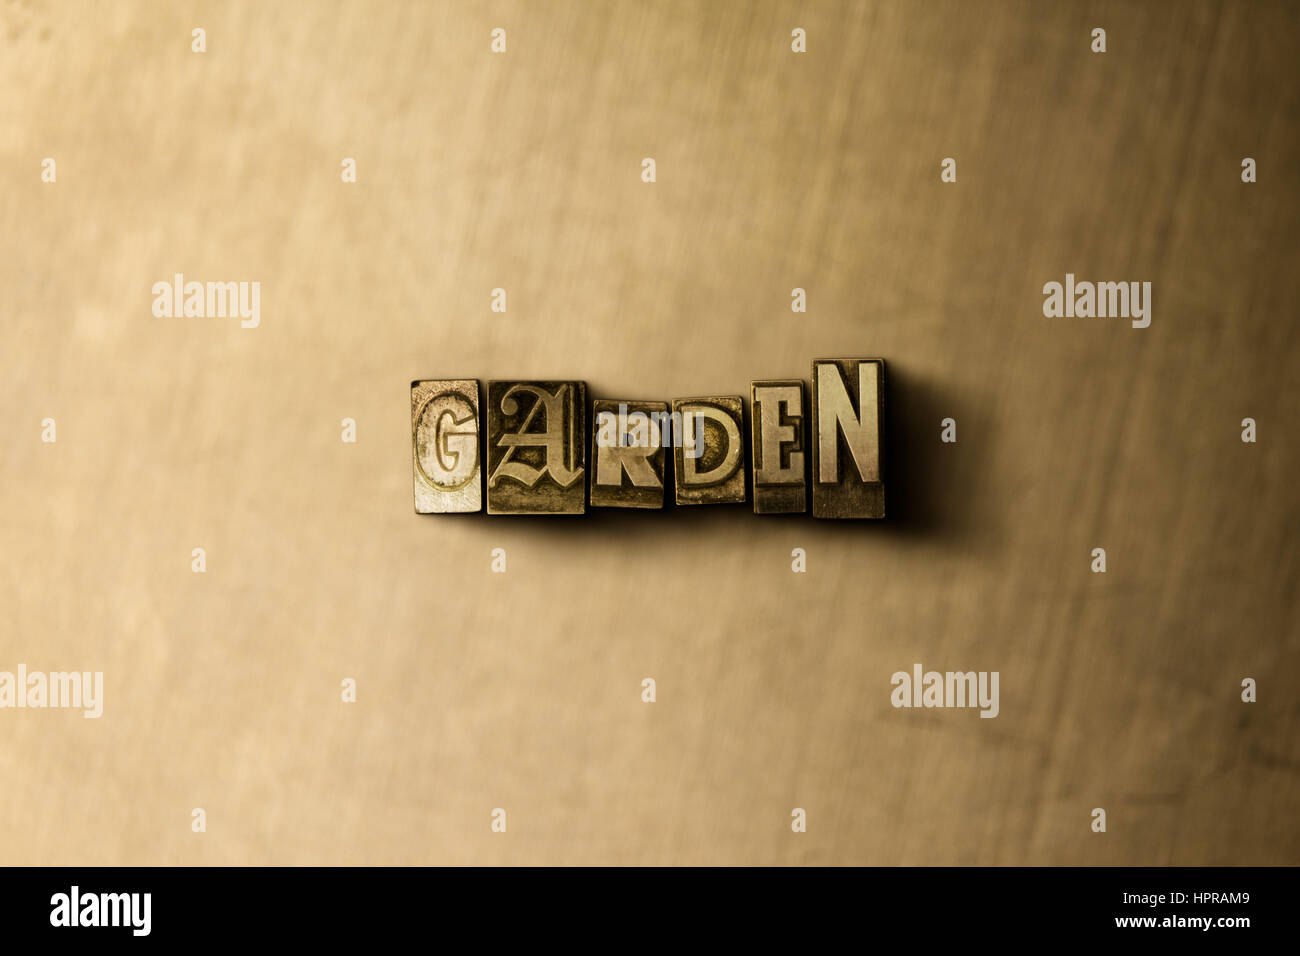 GARDEN - close-up of grungy vintage typeset word on metal backdrop ...